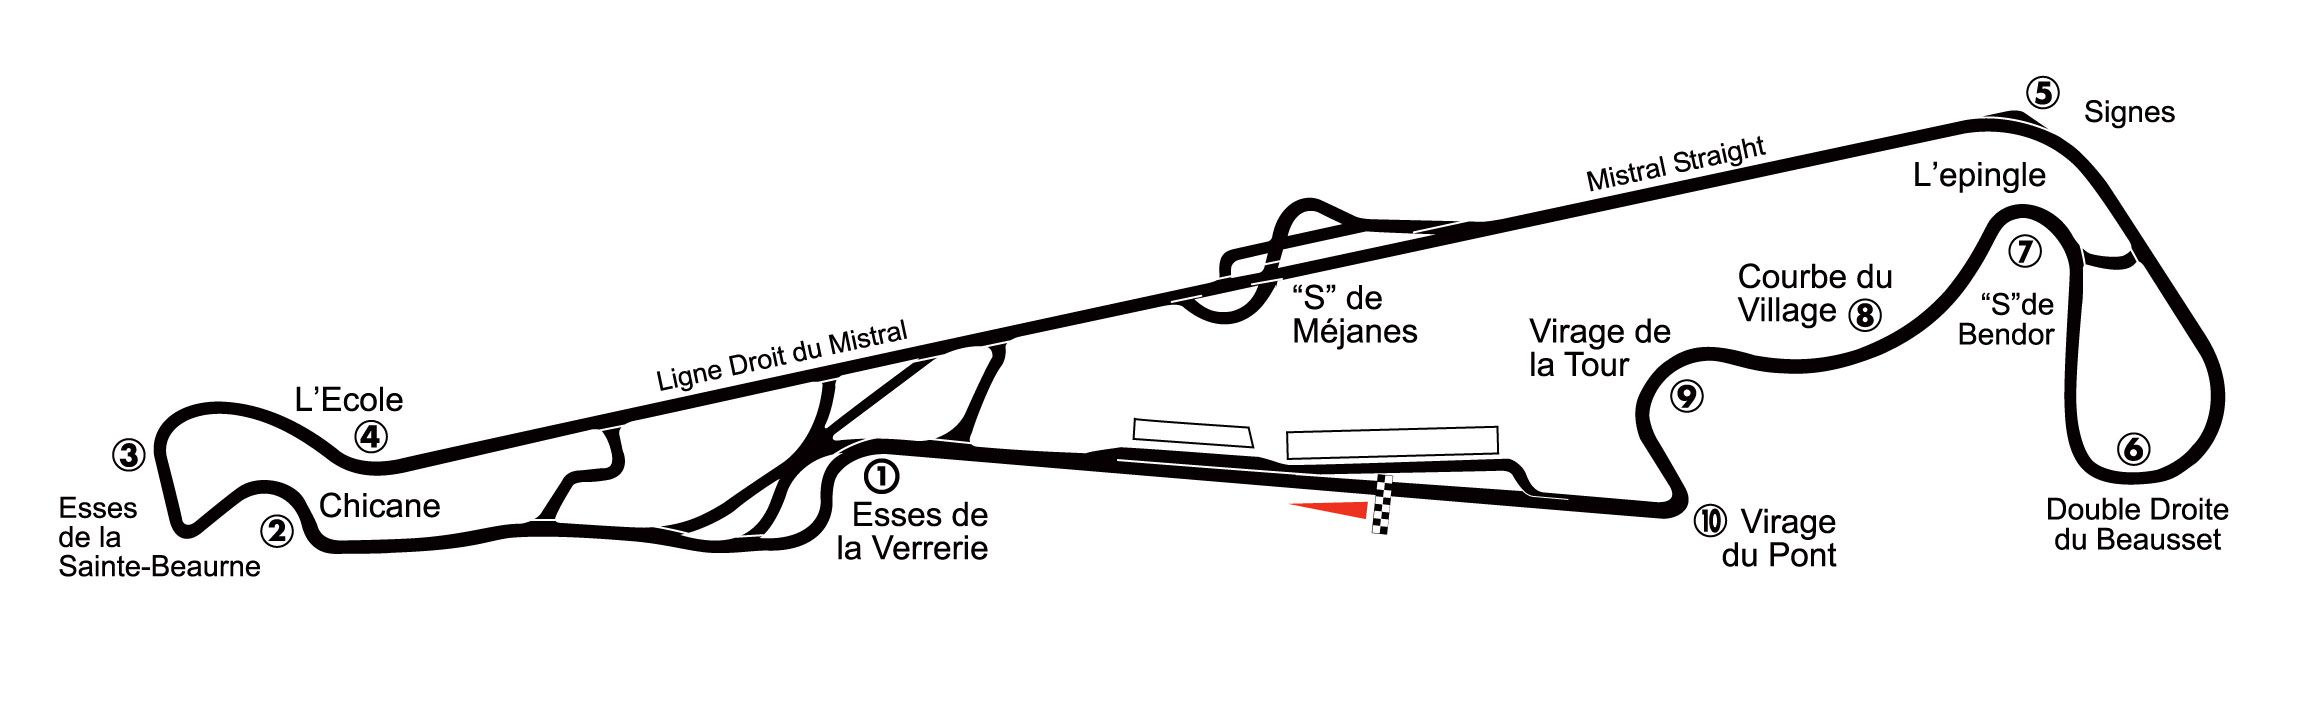 Circuito Paul Ricard : Paul ricard racing circuits race tracks and f